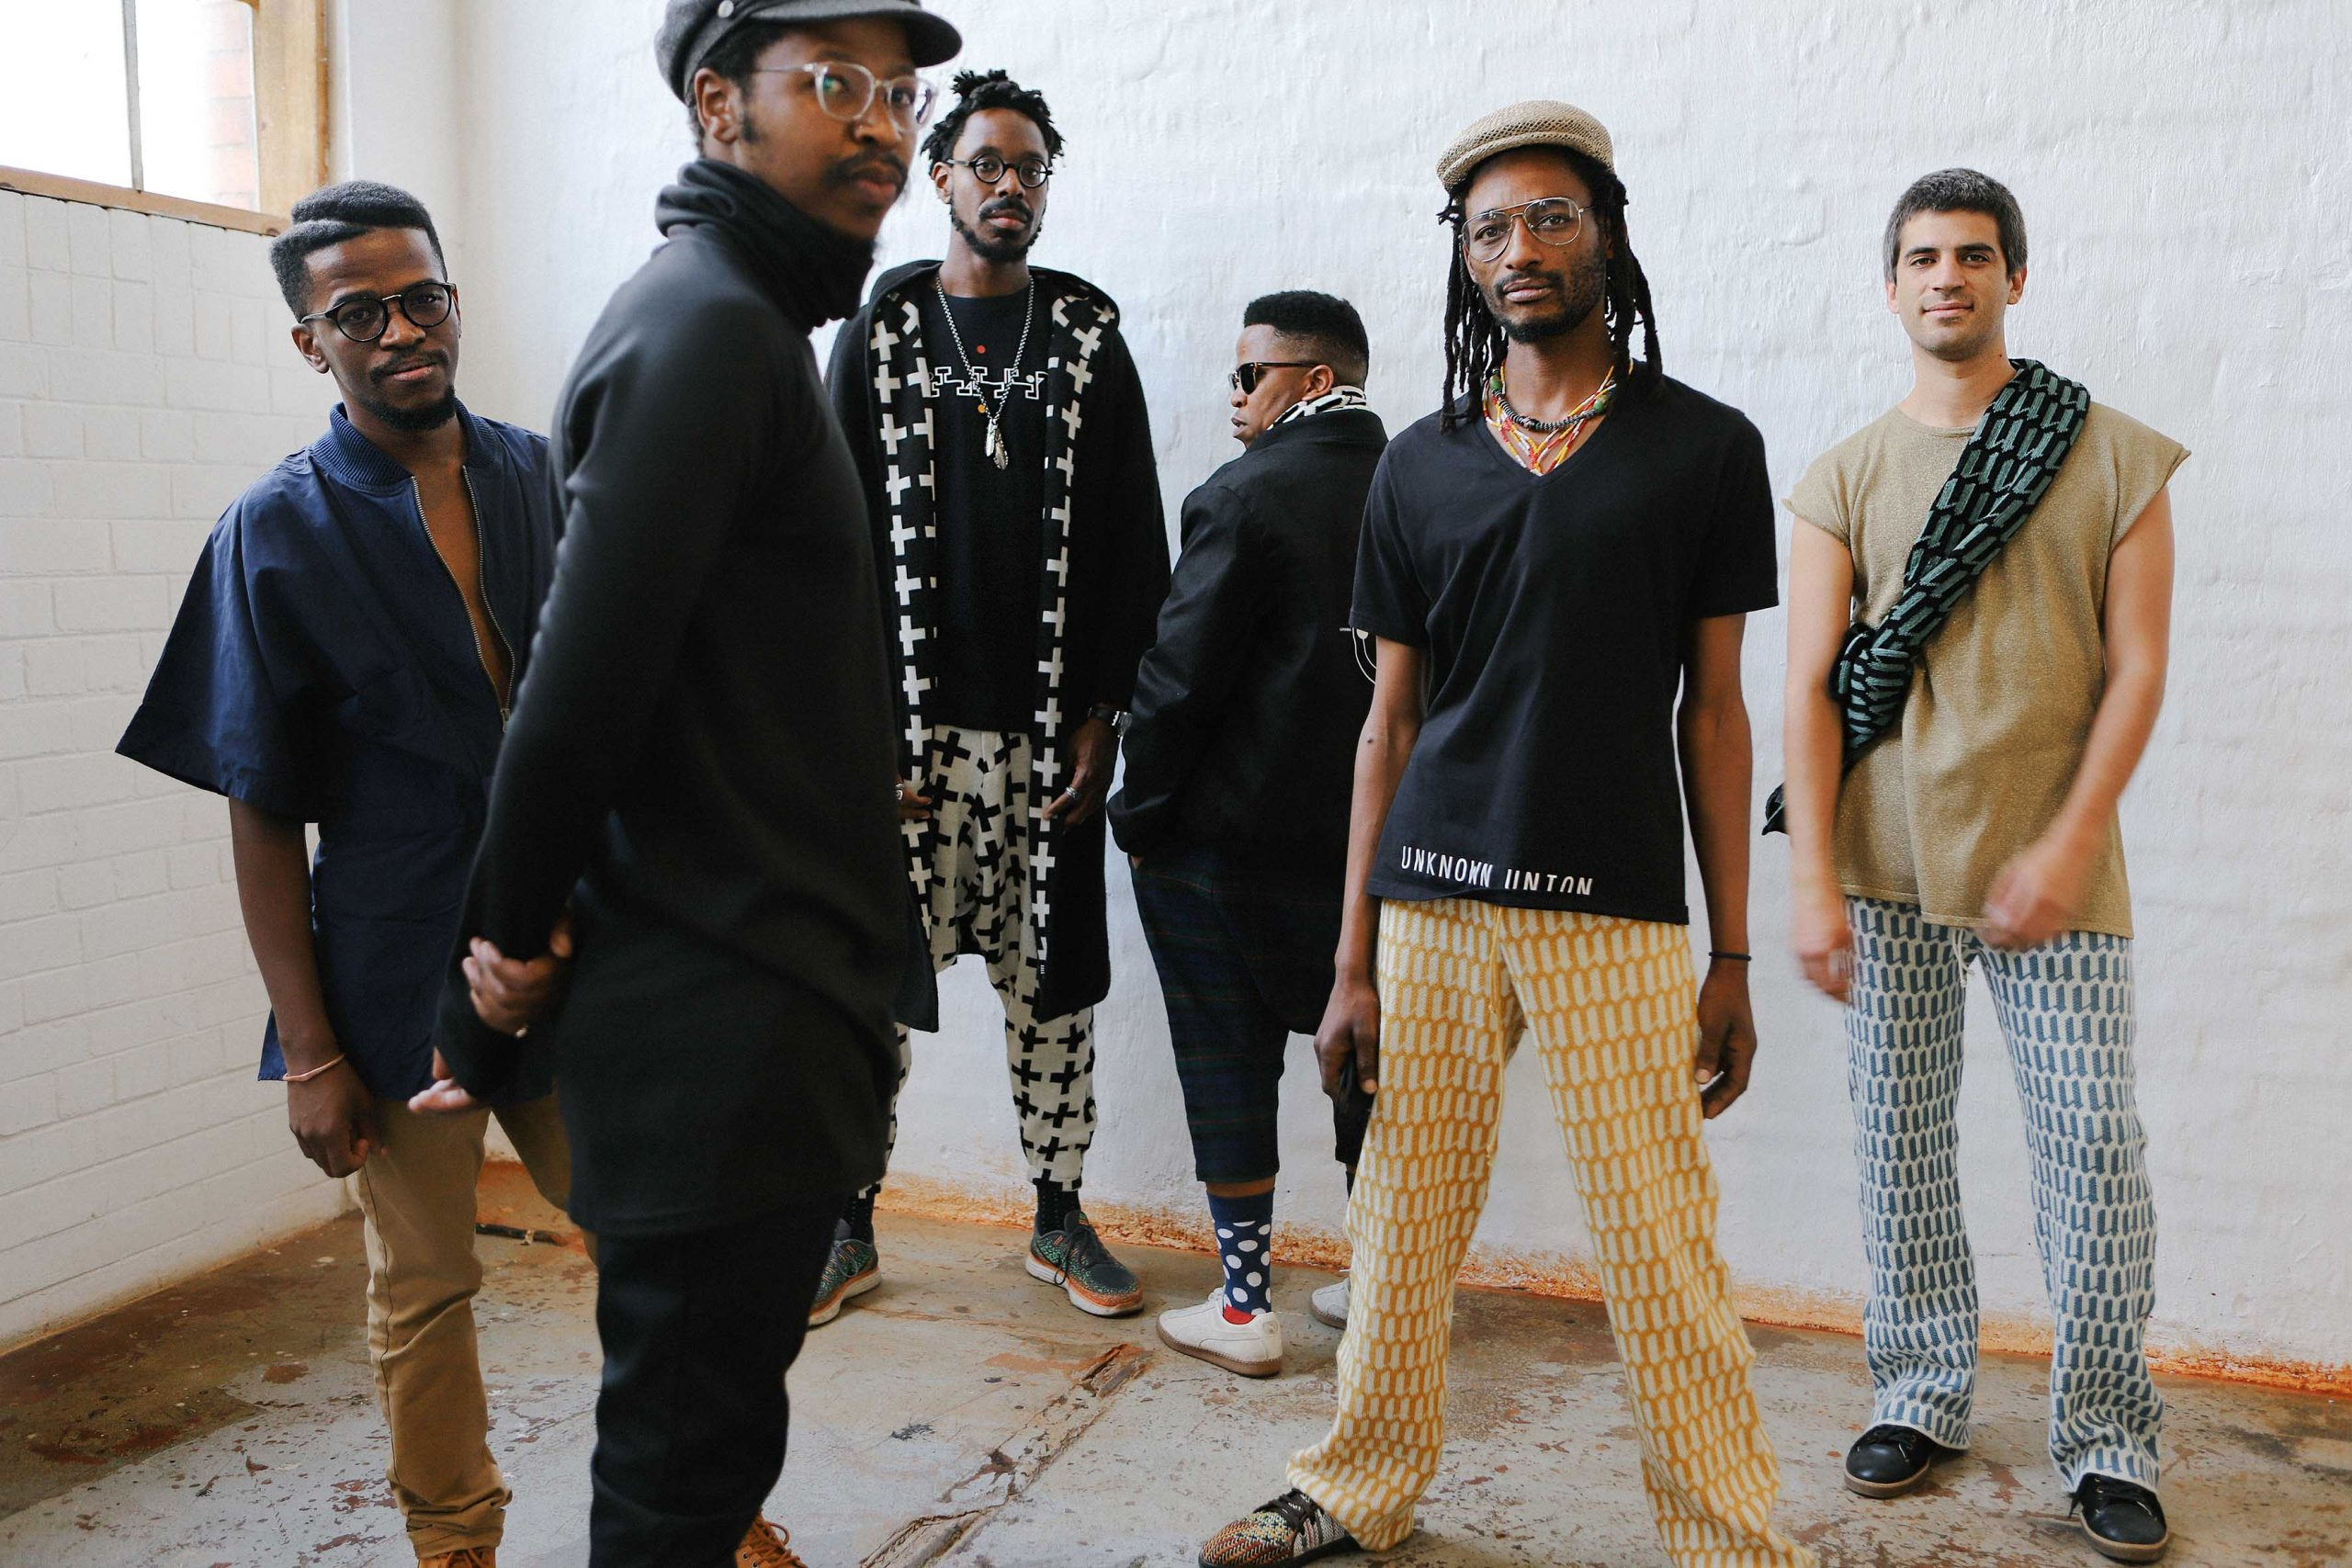 Shabaka and The Ancestors is a cross-continental octet featuring mainly South Africa-based jazz musicians. (Photograph by Tjaša Gnezda)